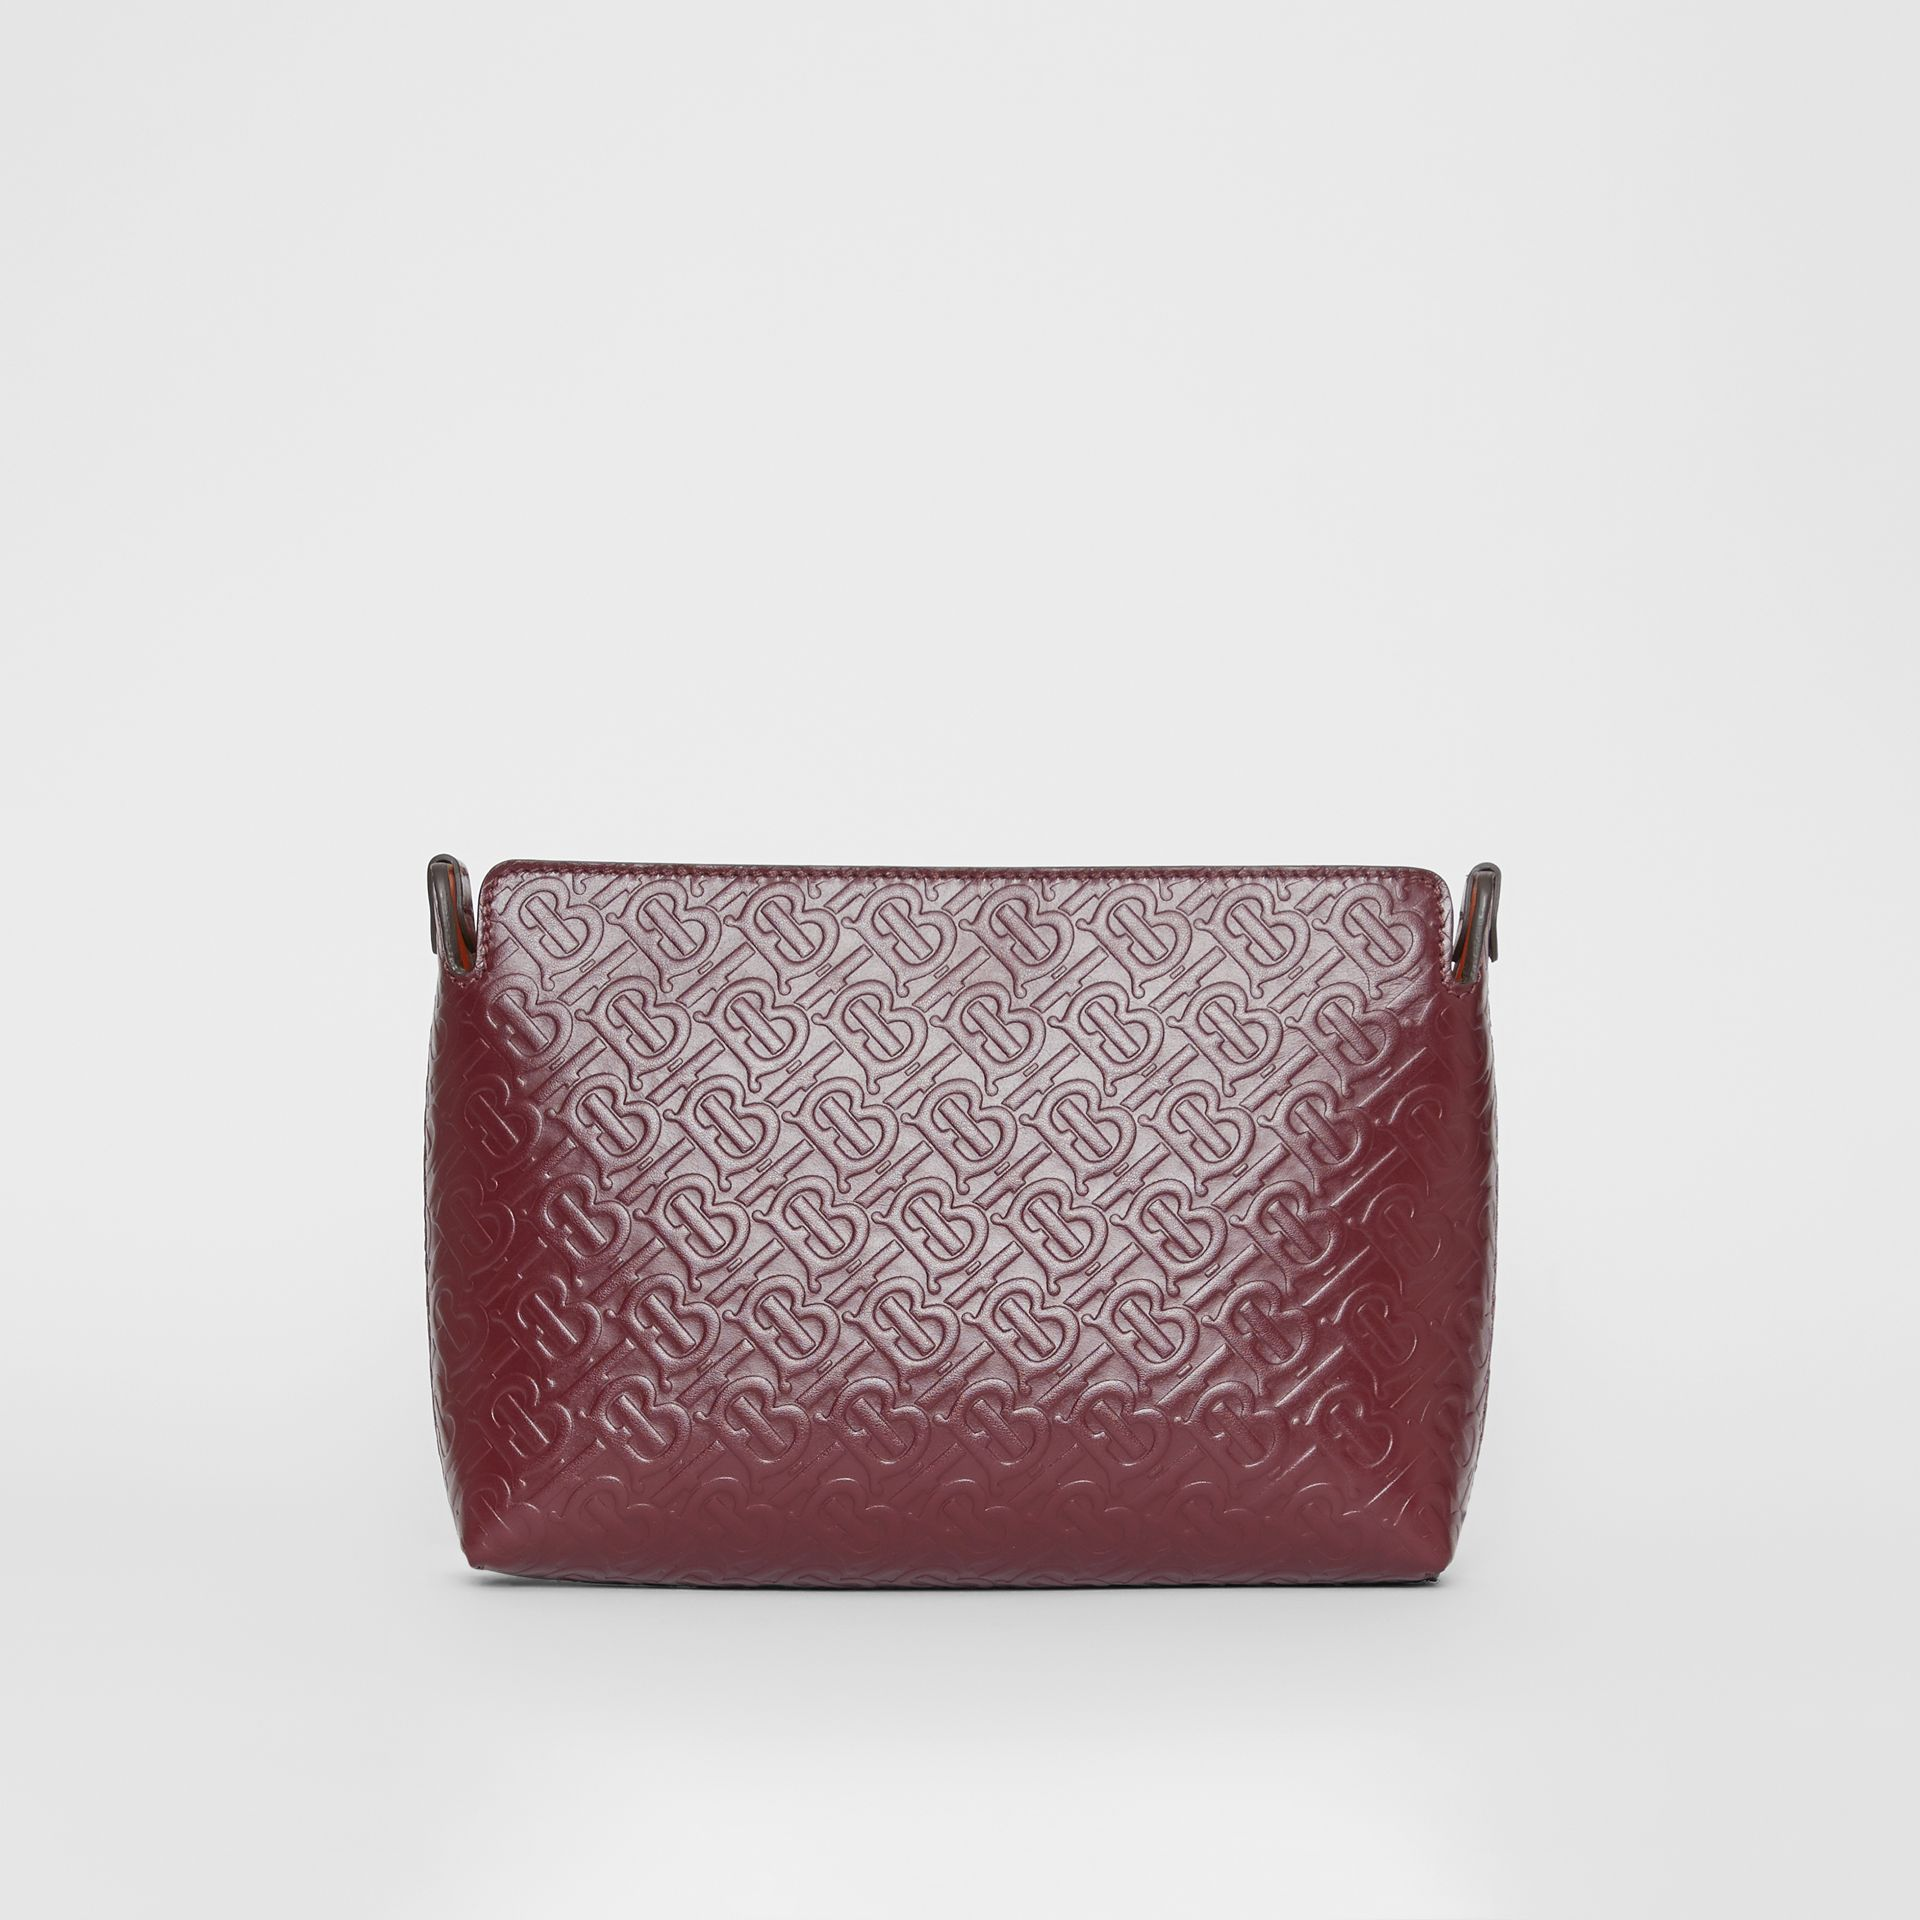 Medium Monogram Leather Clutch in Oxblood - Women | Burberry Australia - gallery image 4